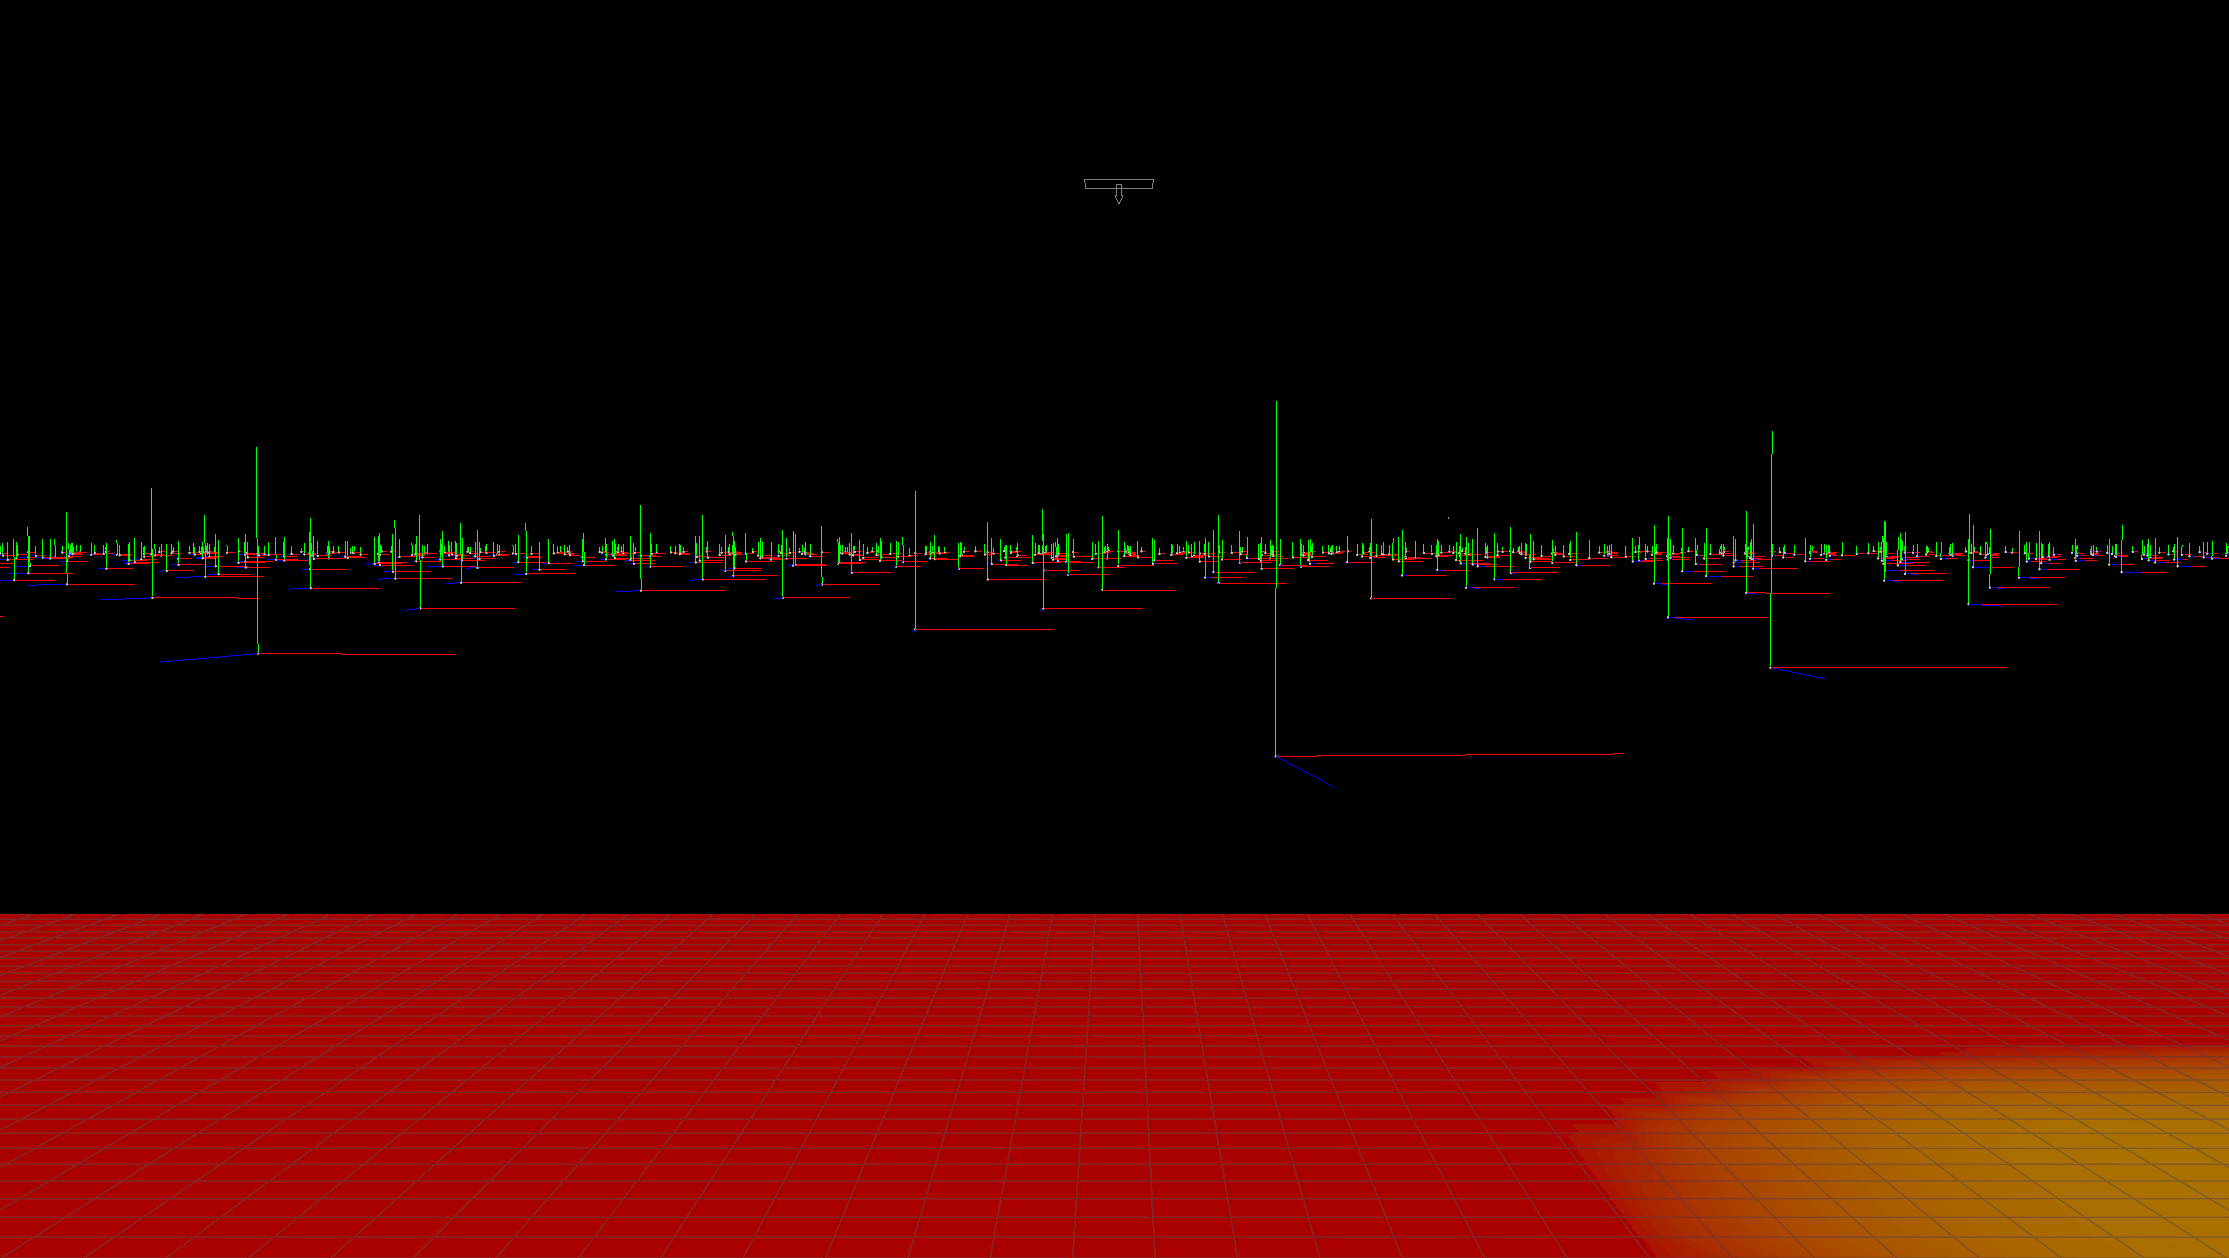 This is a view of the template points from the render camera. Notice the subtle variation in rotation and scale among the points.